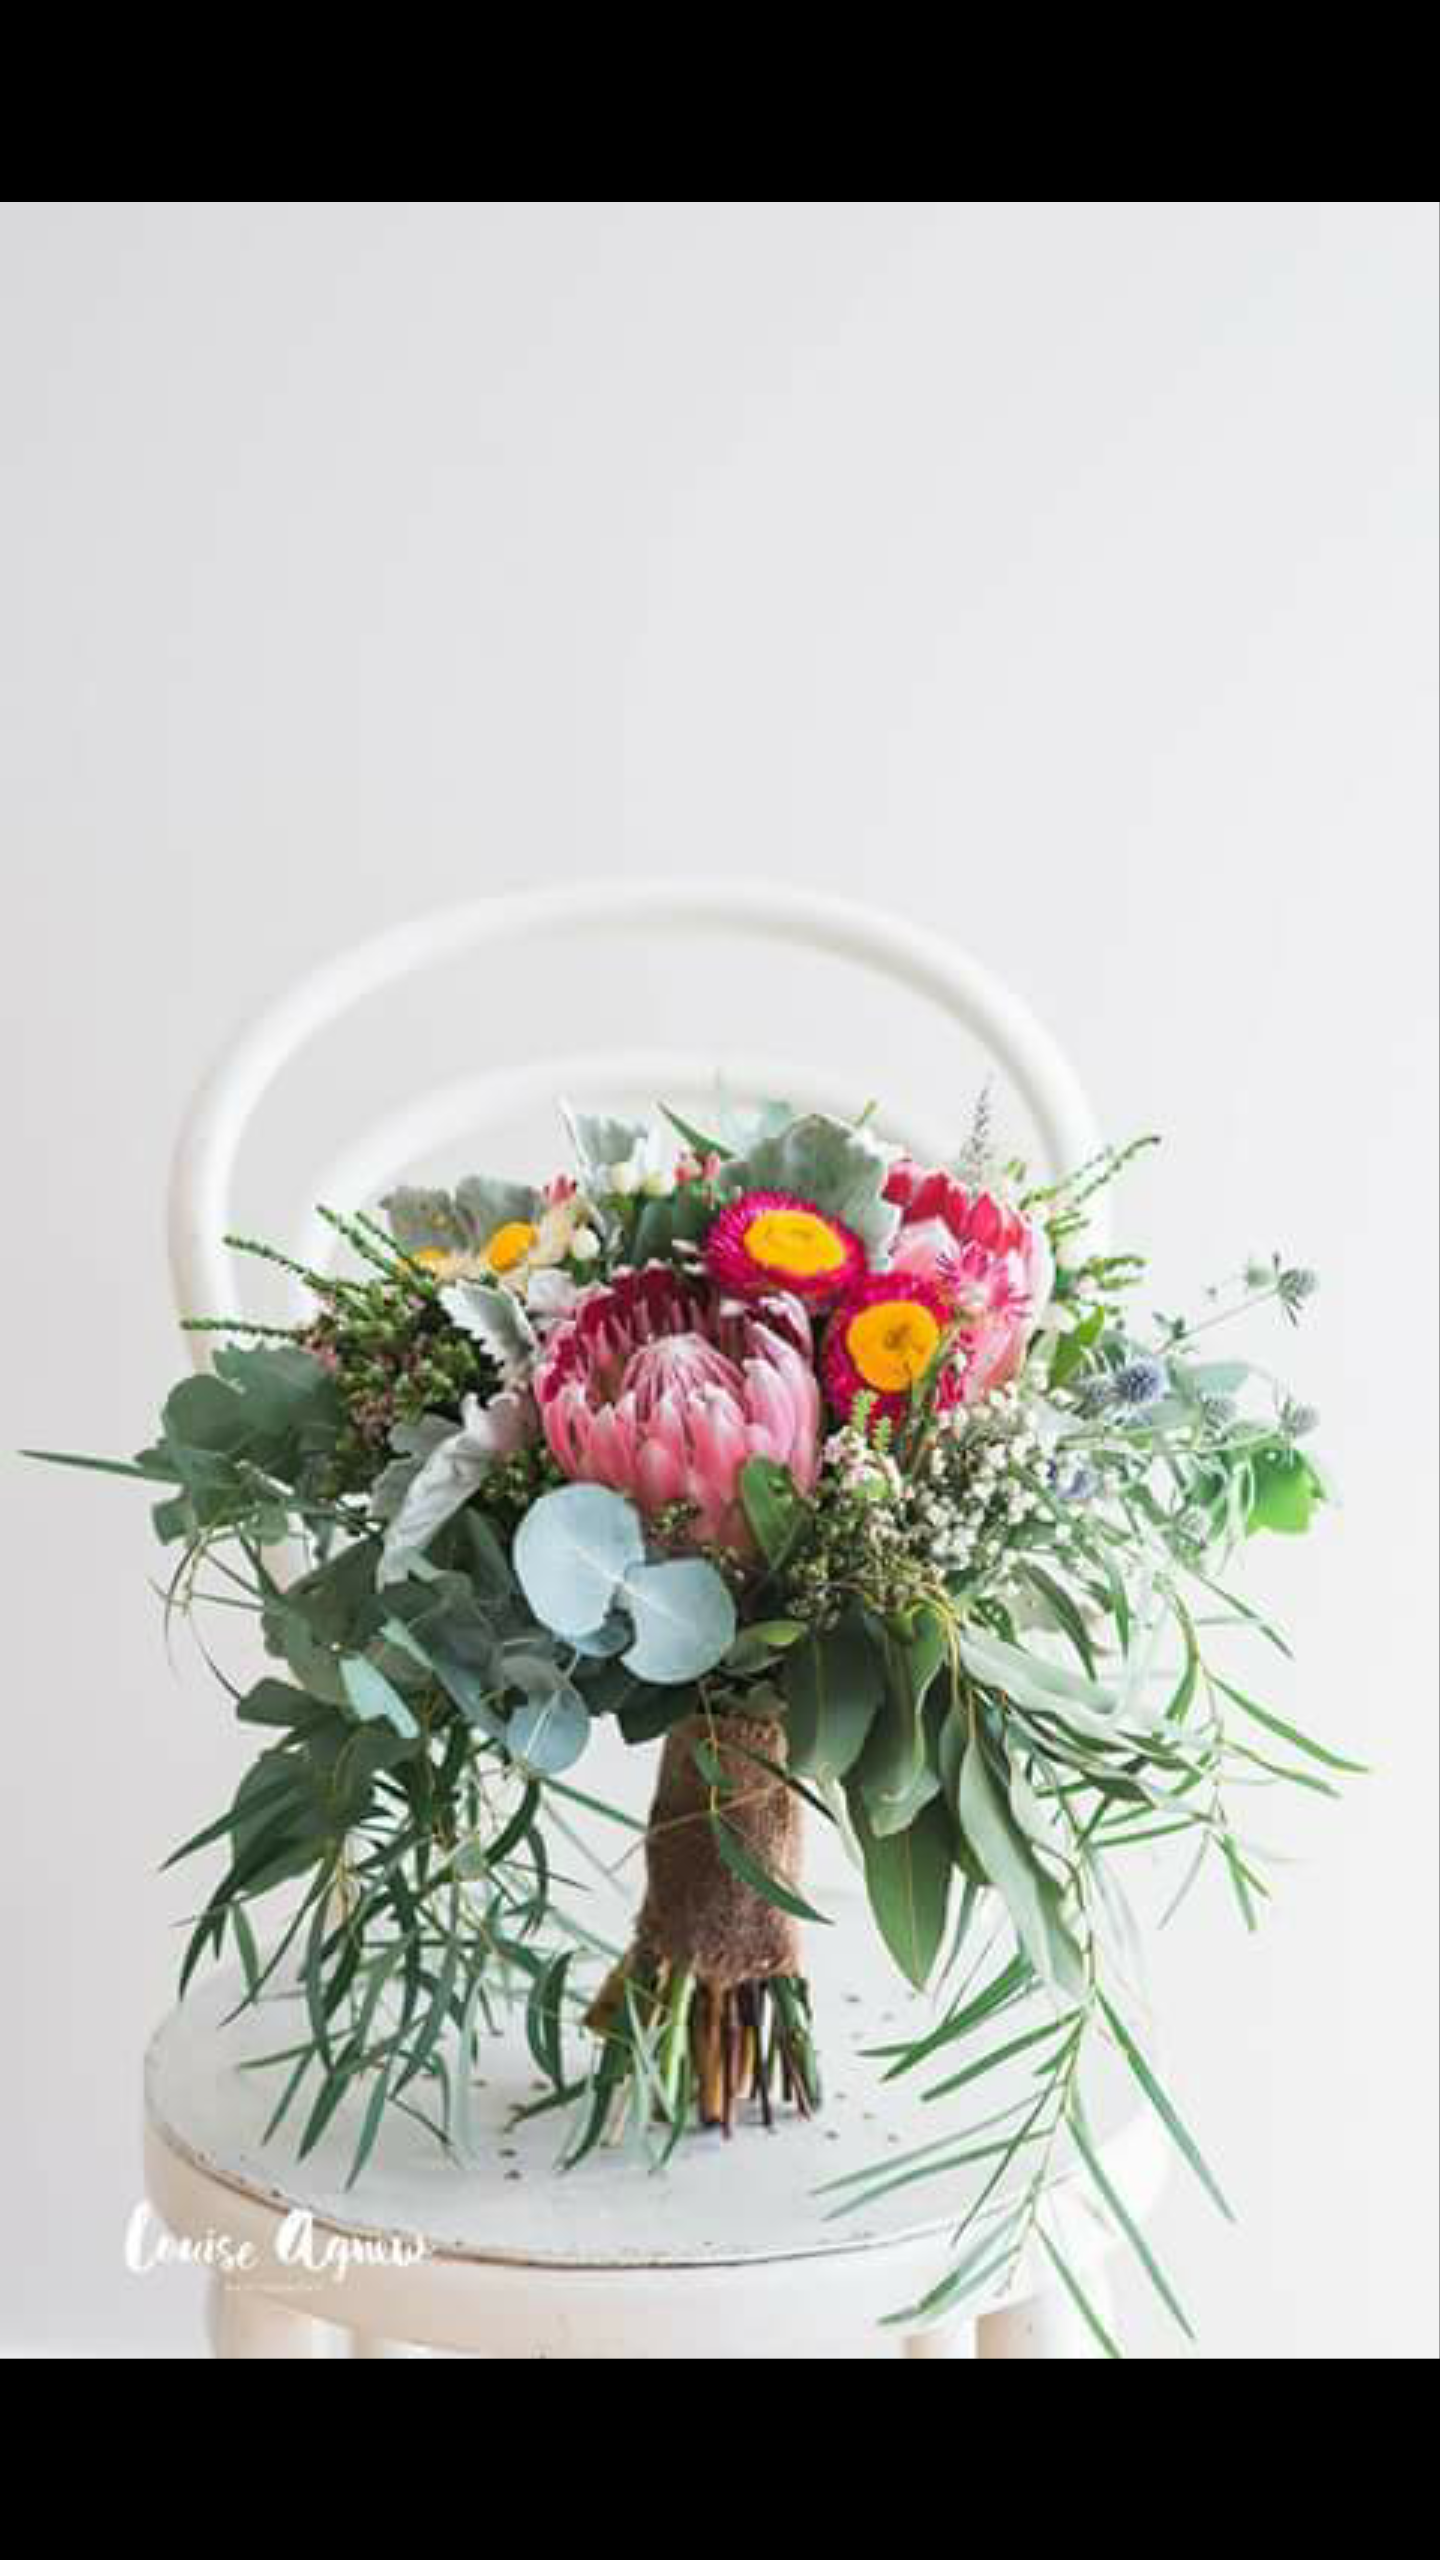 Bouquet by Margie our Florist. Photo by Louise Agnew Photography